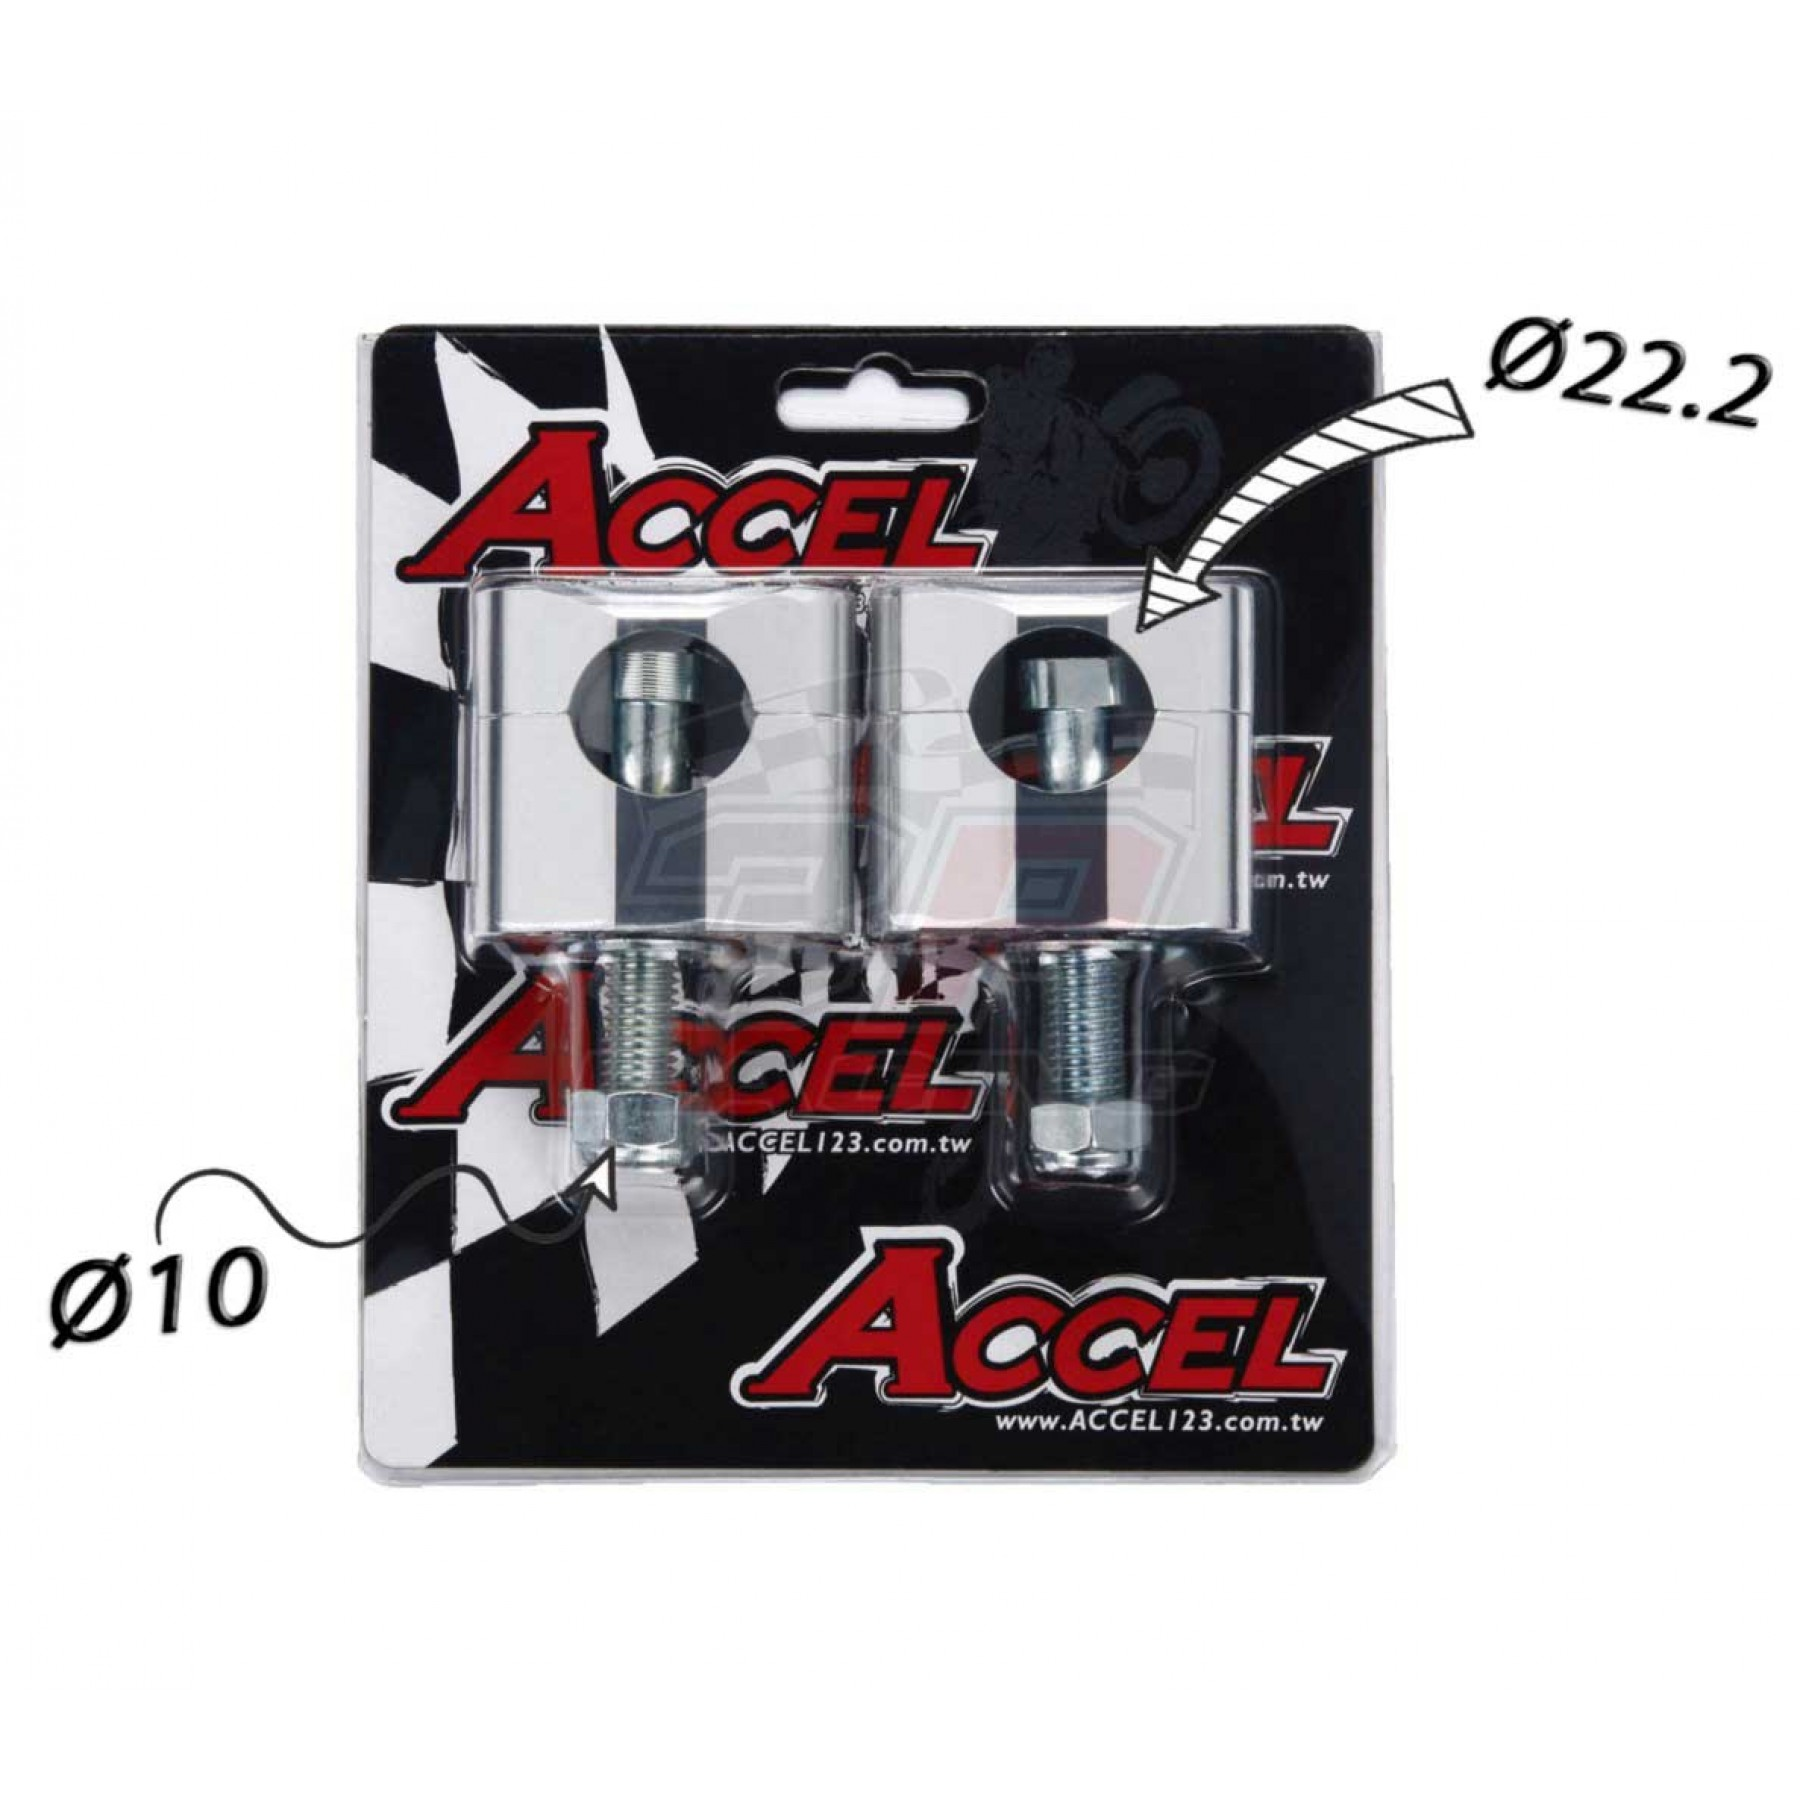 Accel Universal motorcycle handlebar CNC riser kit for 34mm raised height with 10mm bolt. Silver color. For all bikes with 22.2mm bar. P/N: AC-BM-02-22-SR. CNC machined. Bar bore: 22.2mm. Raiser height: 34mm